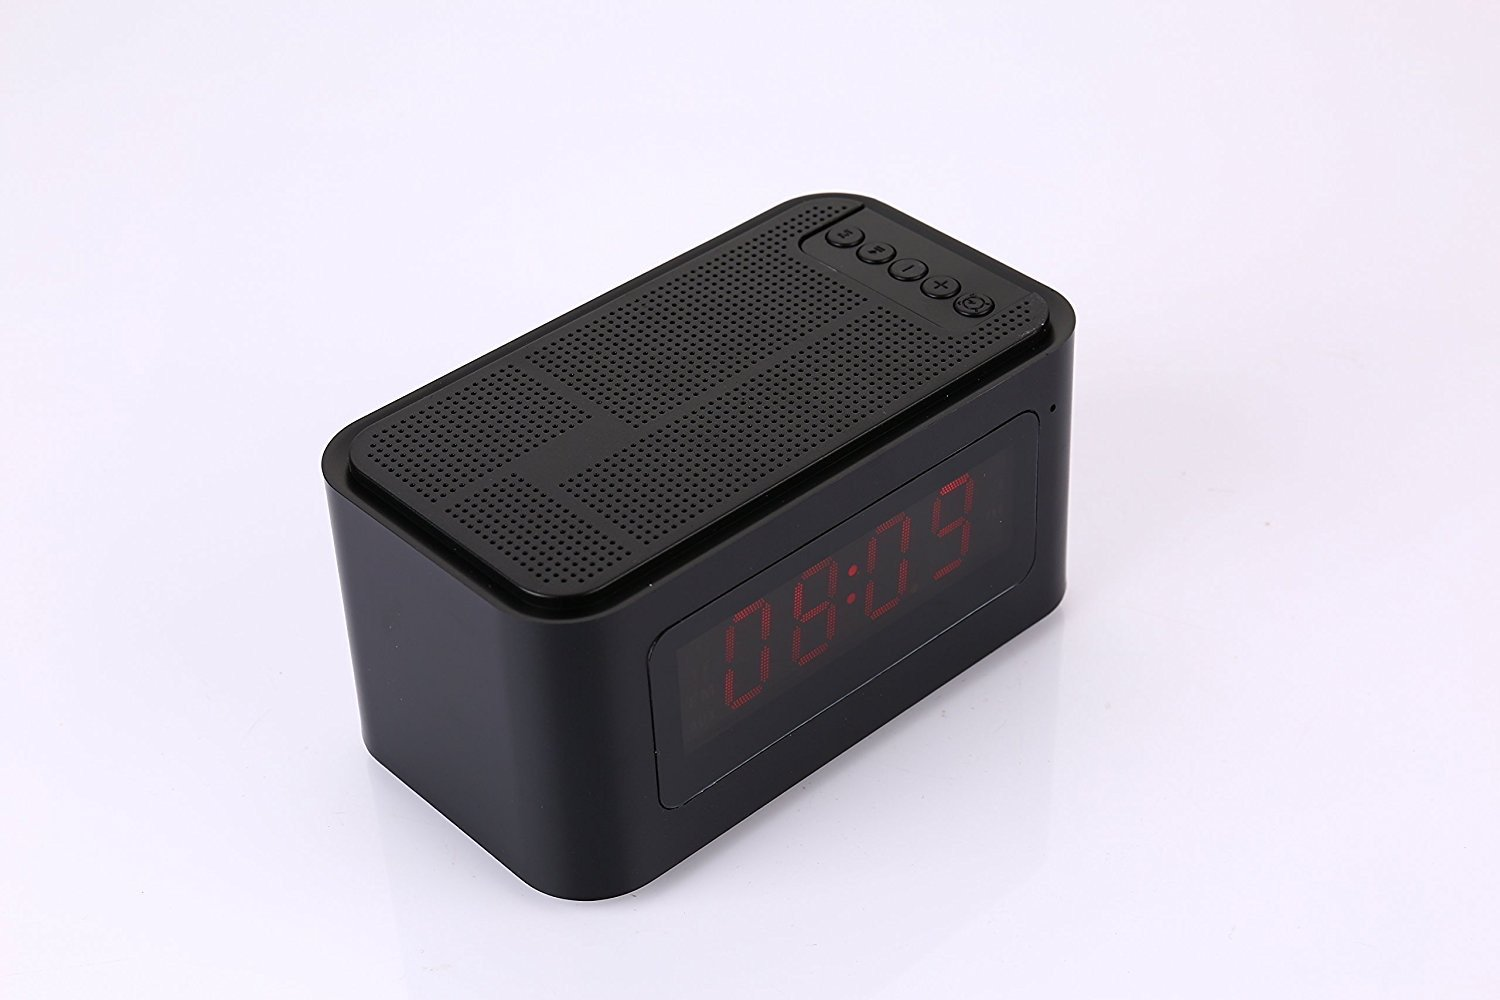 ShopSmartLife Portable S61 Wireless Bluetooth 4.0 Speaker with Time Display Alarm Clock Handsfree Call Support TF Card IPX5 Waterproof (BLACK)